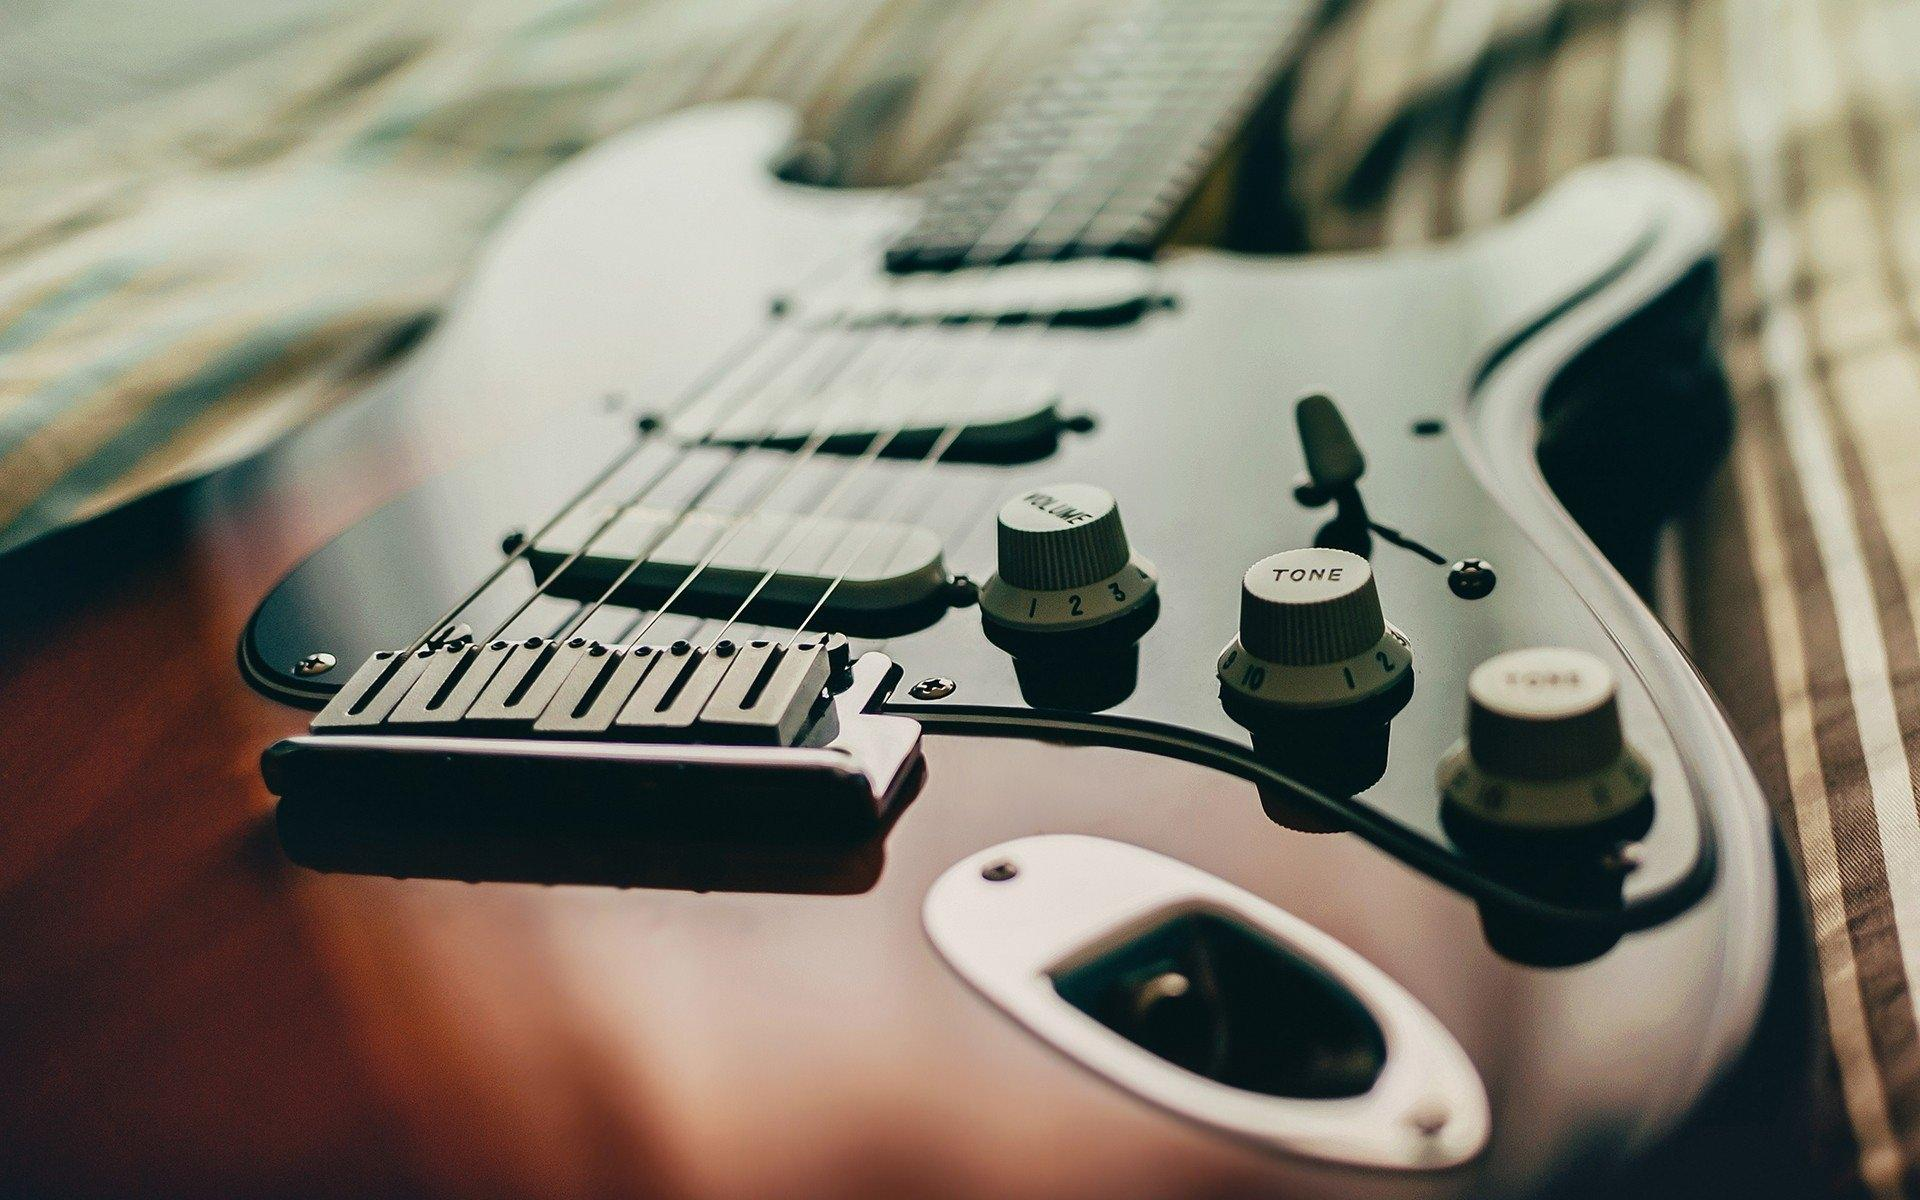 Photography of electric guitar HD wallpaper | HD Latest Wallpapers